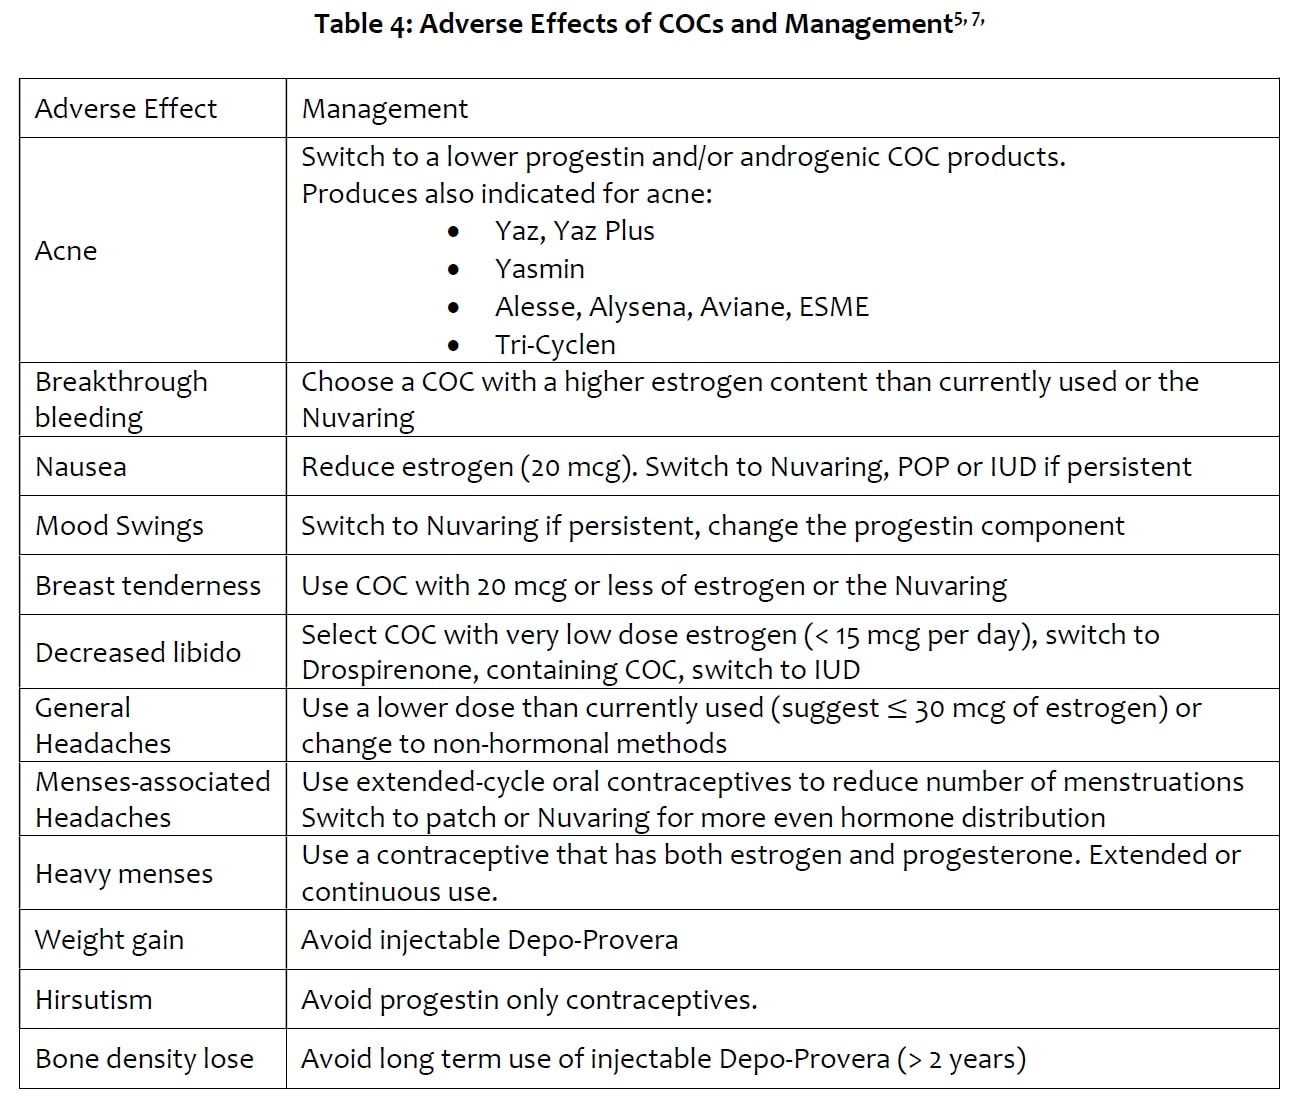 Table 4 - Adverse Effects of COCs and Management